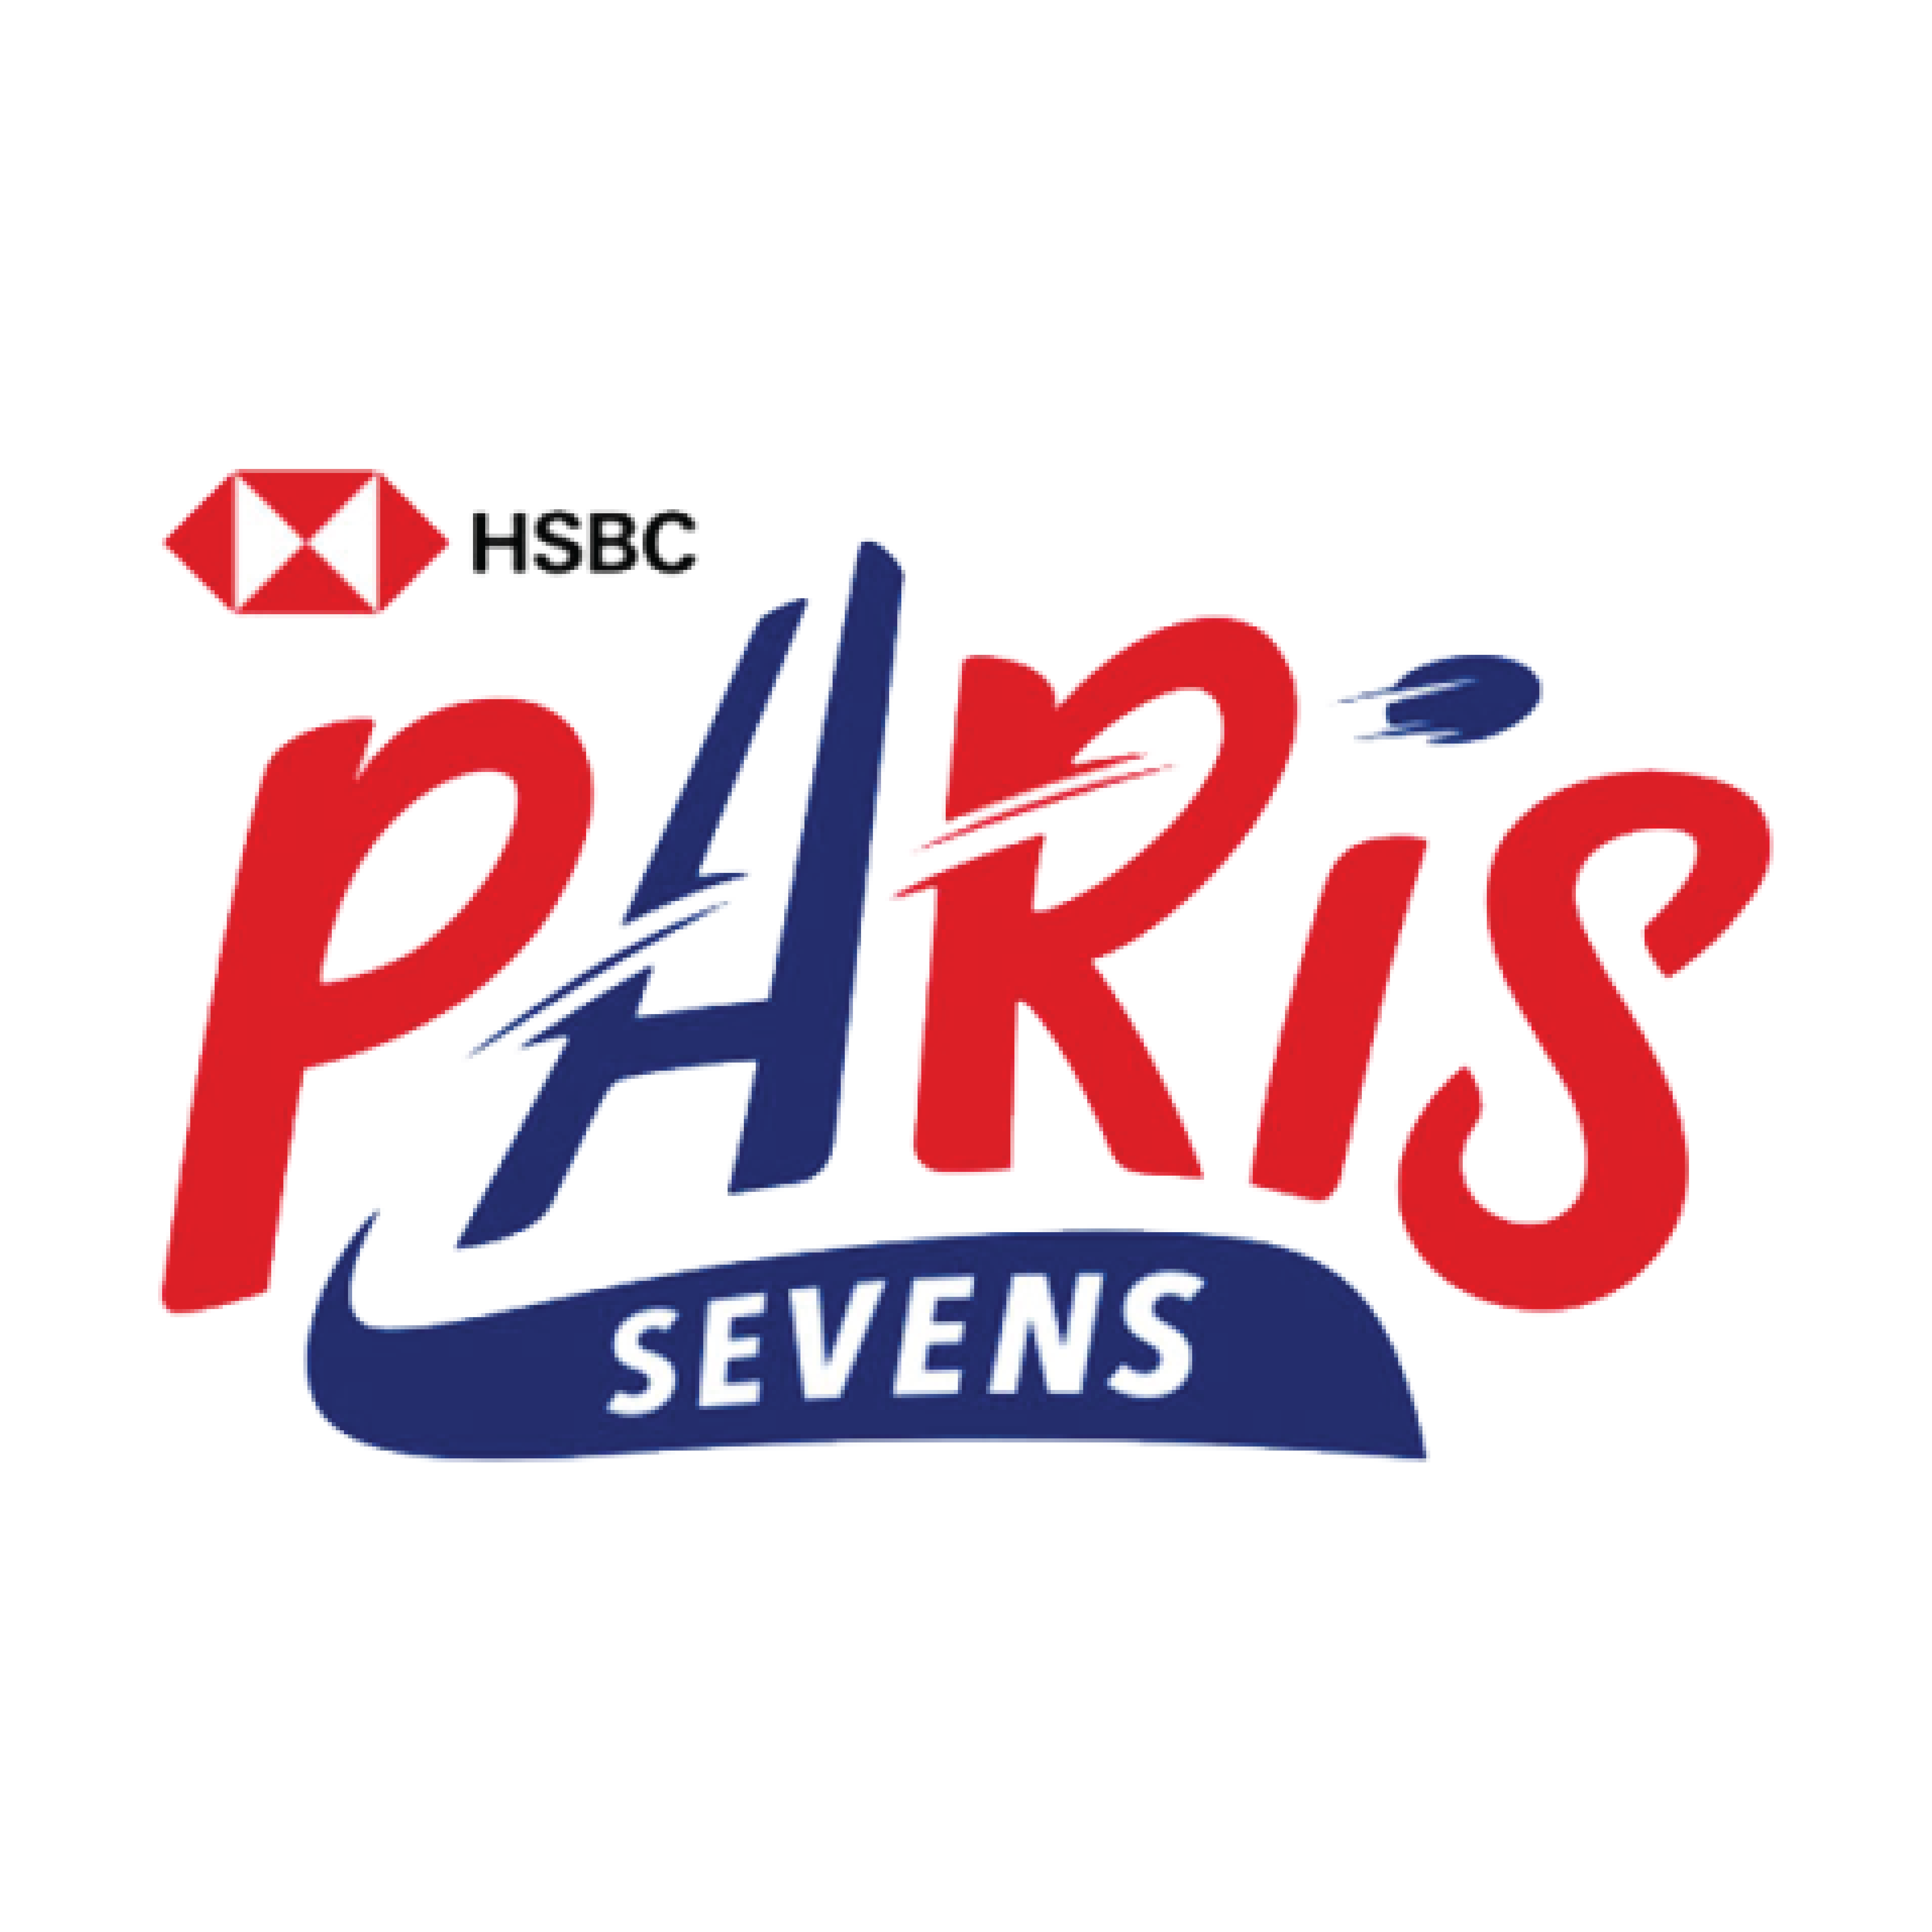 HSBC Paris Sevens